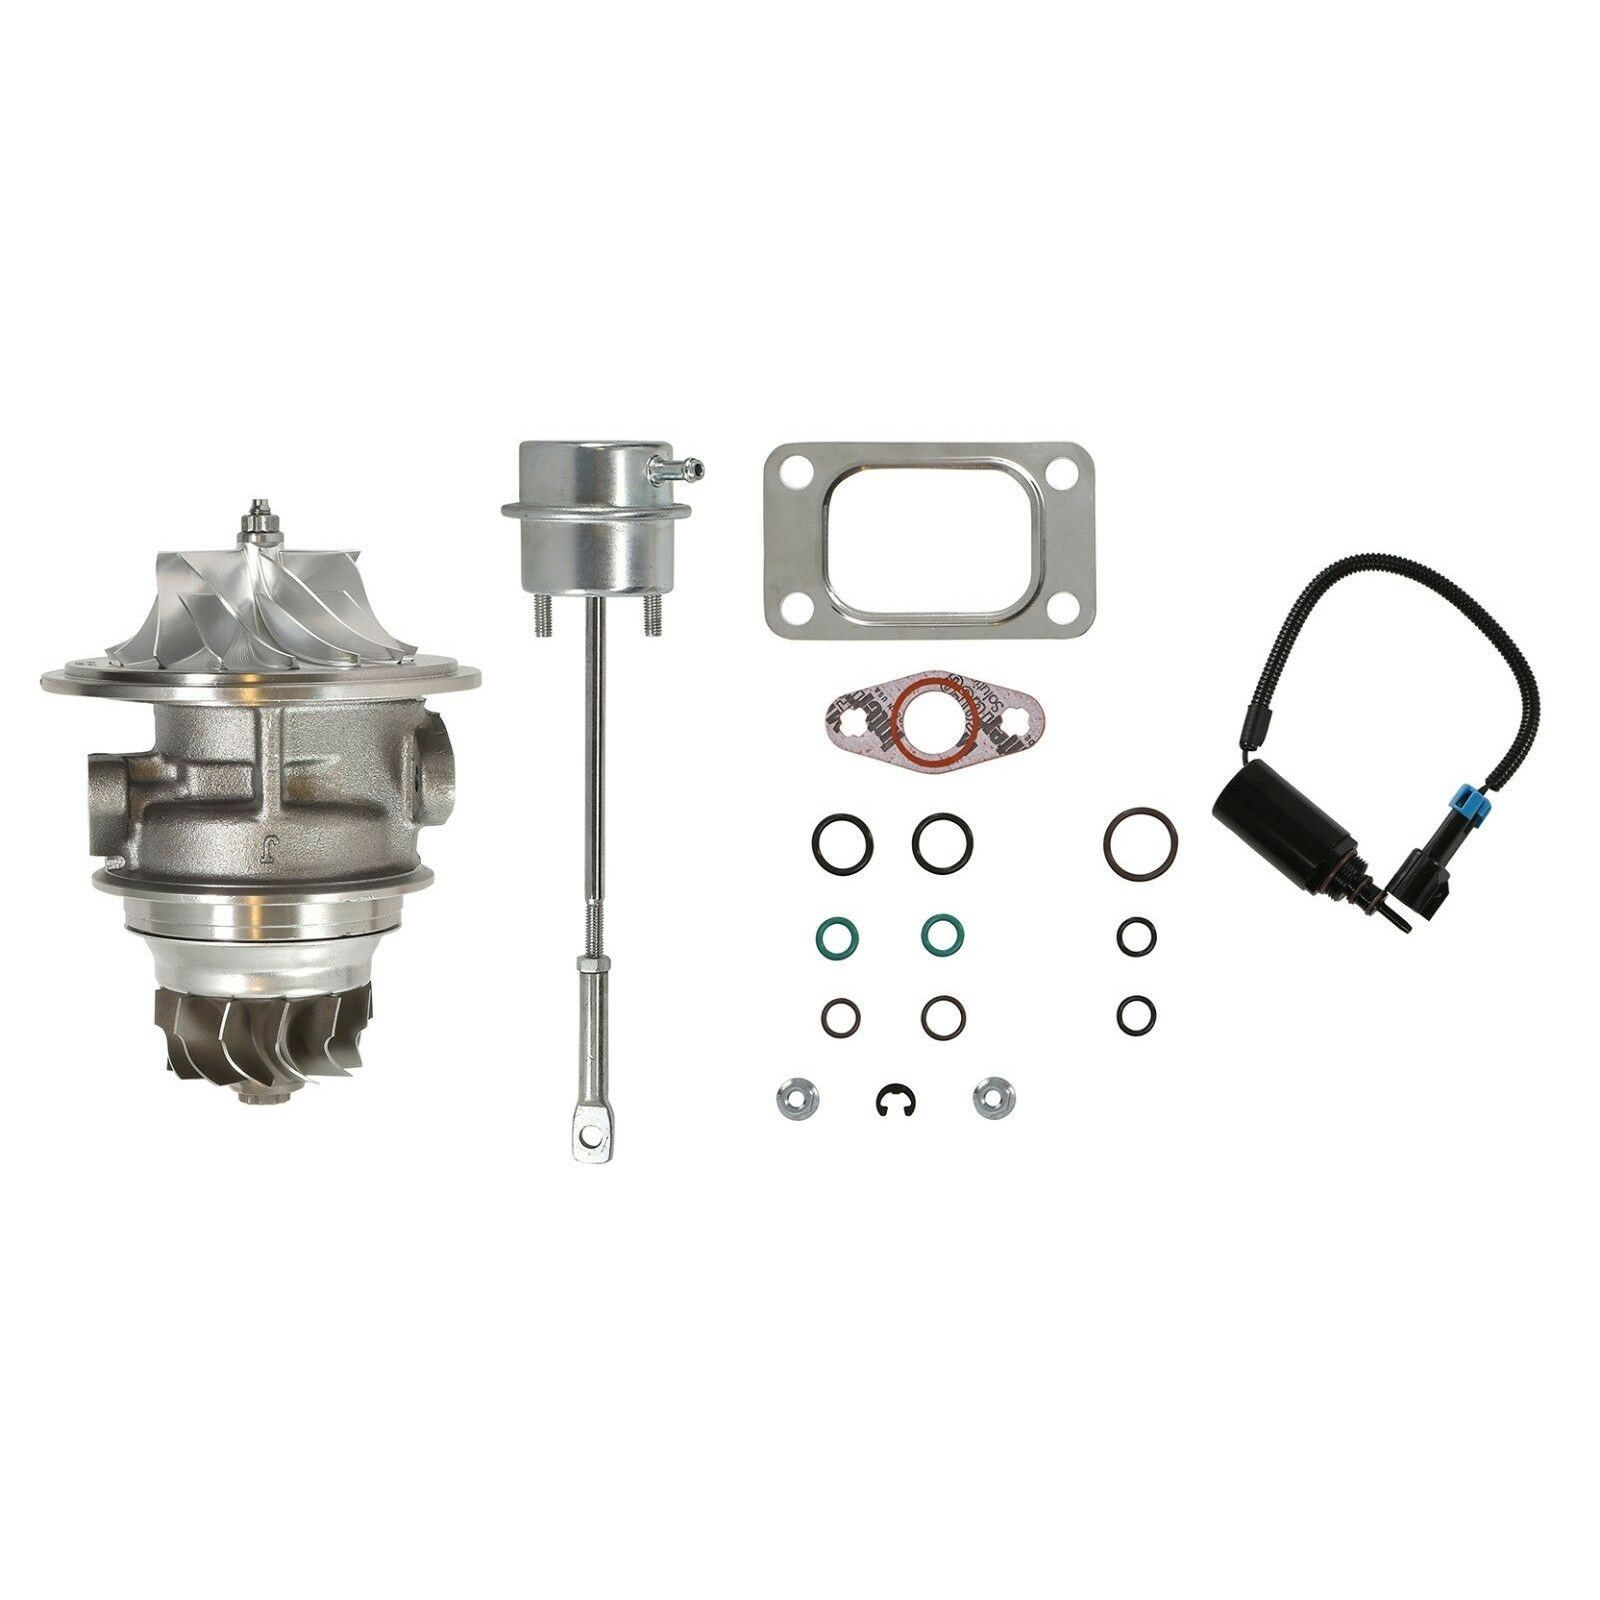 HE351CW Turbo Rebuild Kit Billet CHRA Wastegate Actuator Wastegate Solenoid For 04.5-07 5.9L ISB Dodge Ram Cummins Diesel